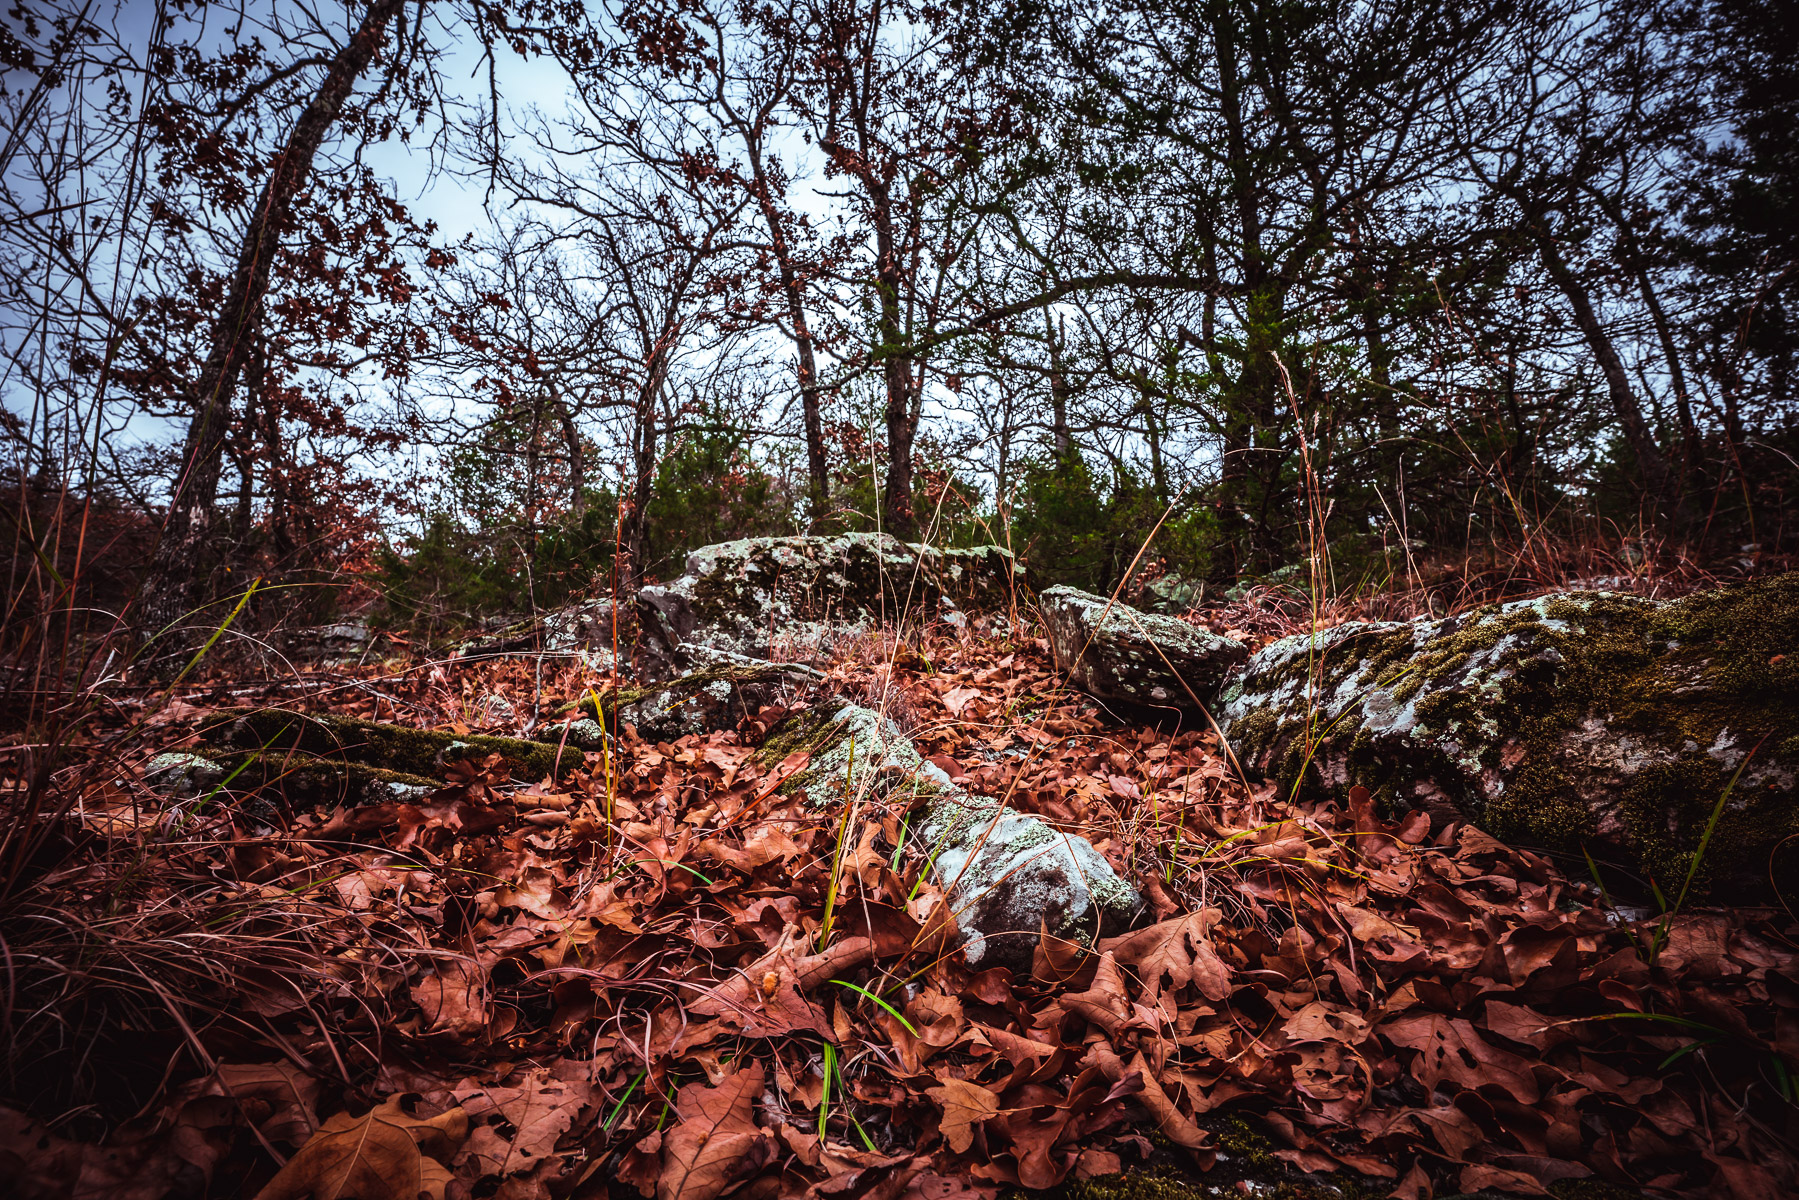 Fallen autumn leaves among the rocky landscape at Oklahoma's Arrowhead State Park.